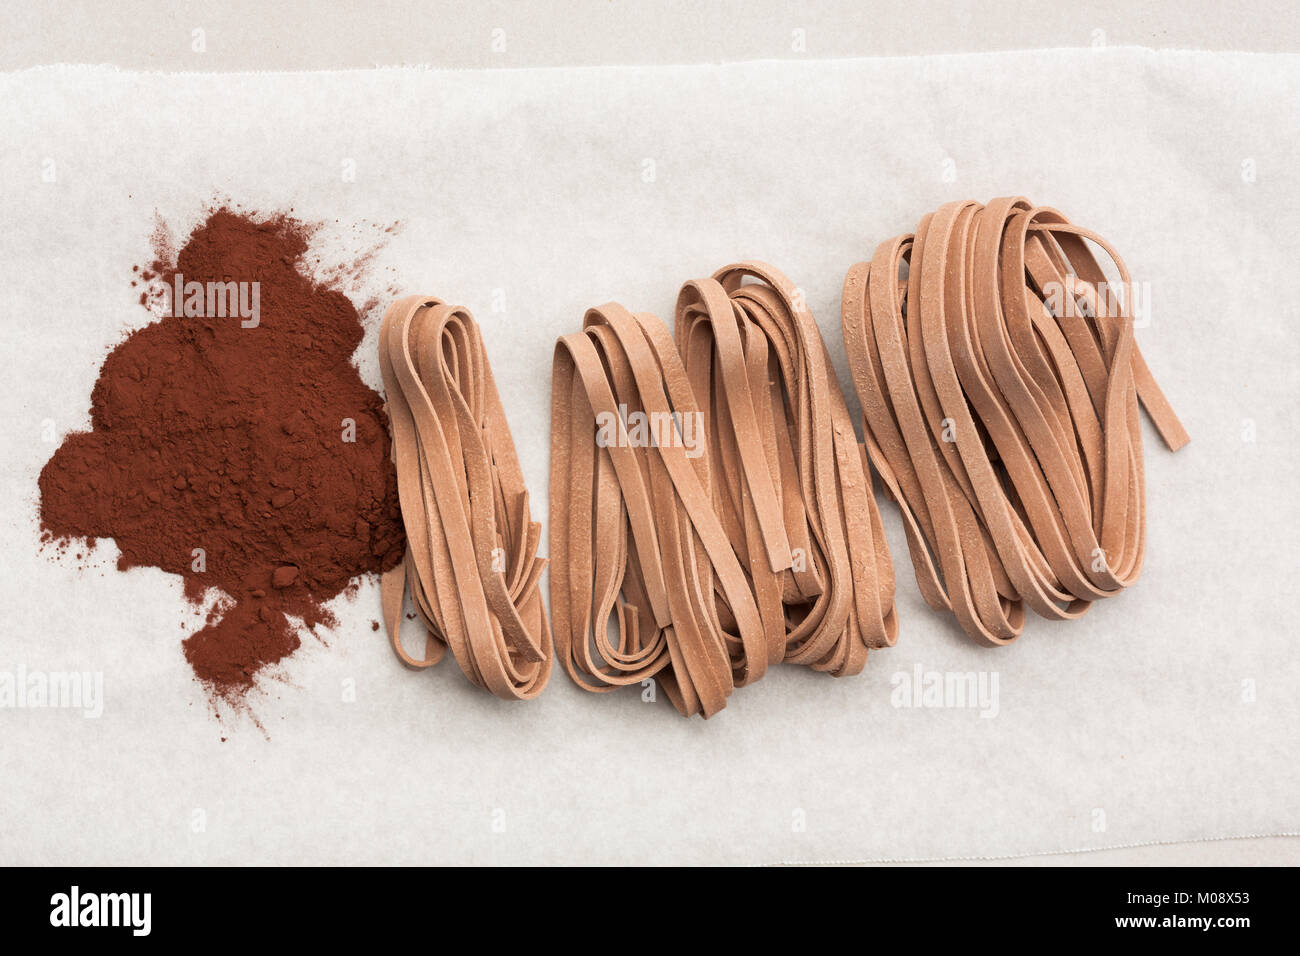 raw Cocoa tagliatelle (noodles) view from above - Stock Image